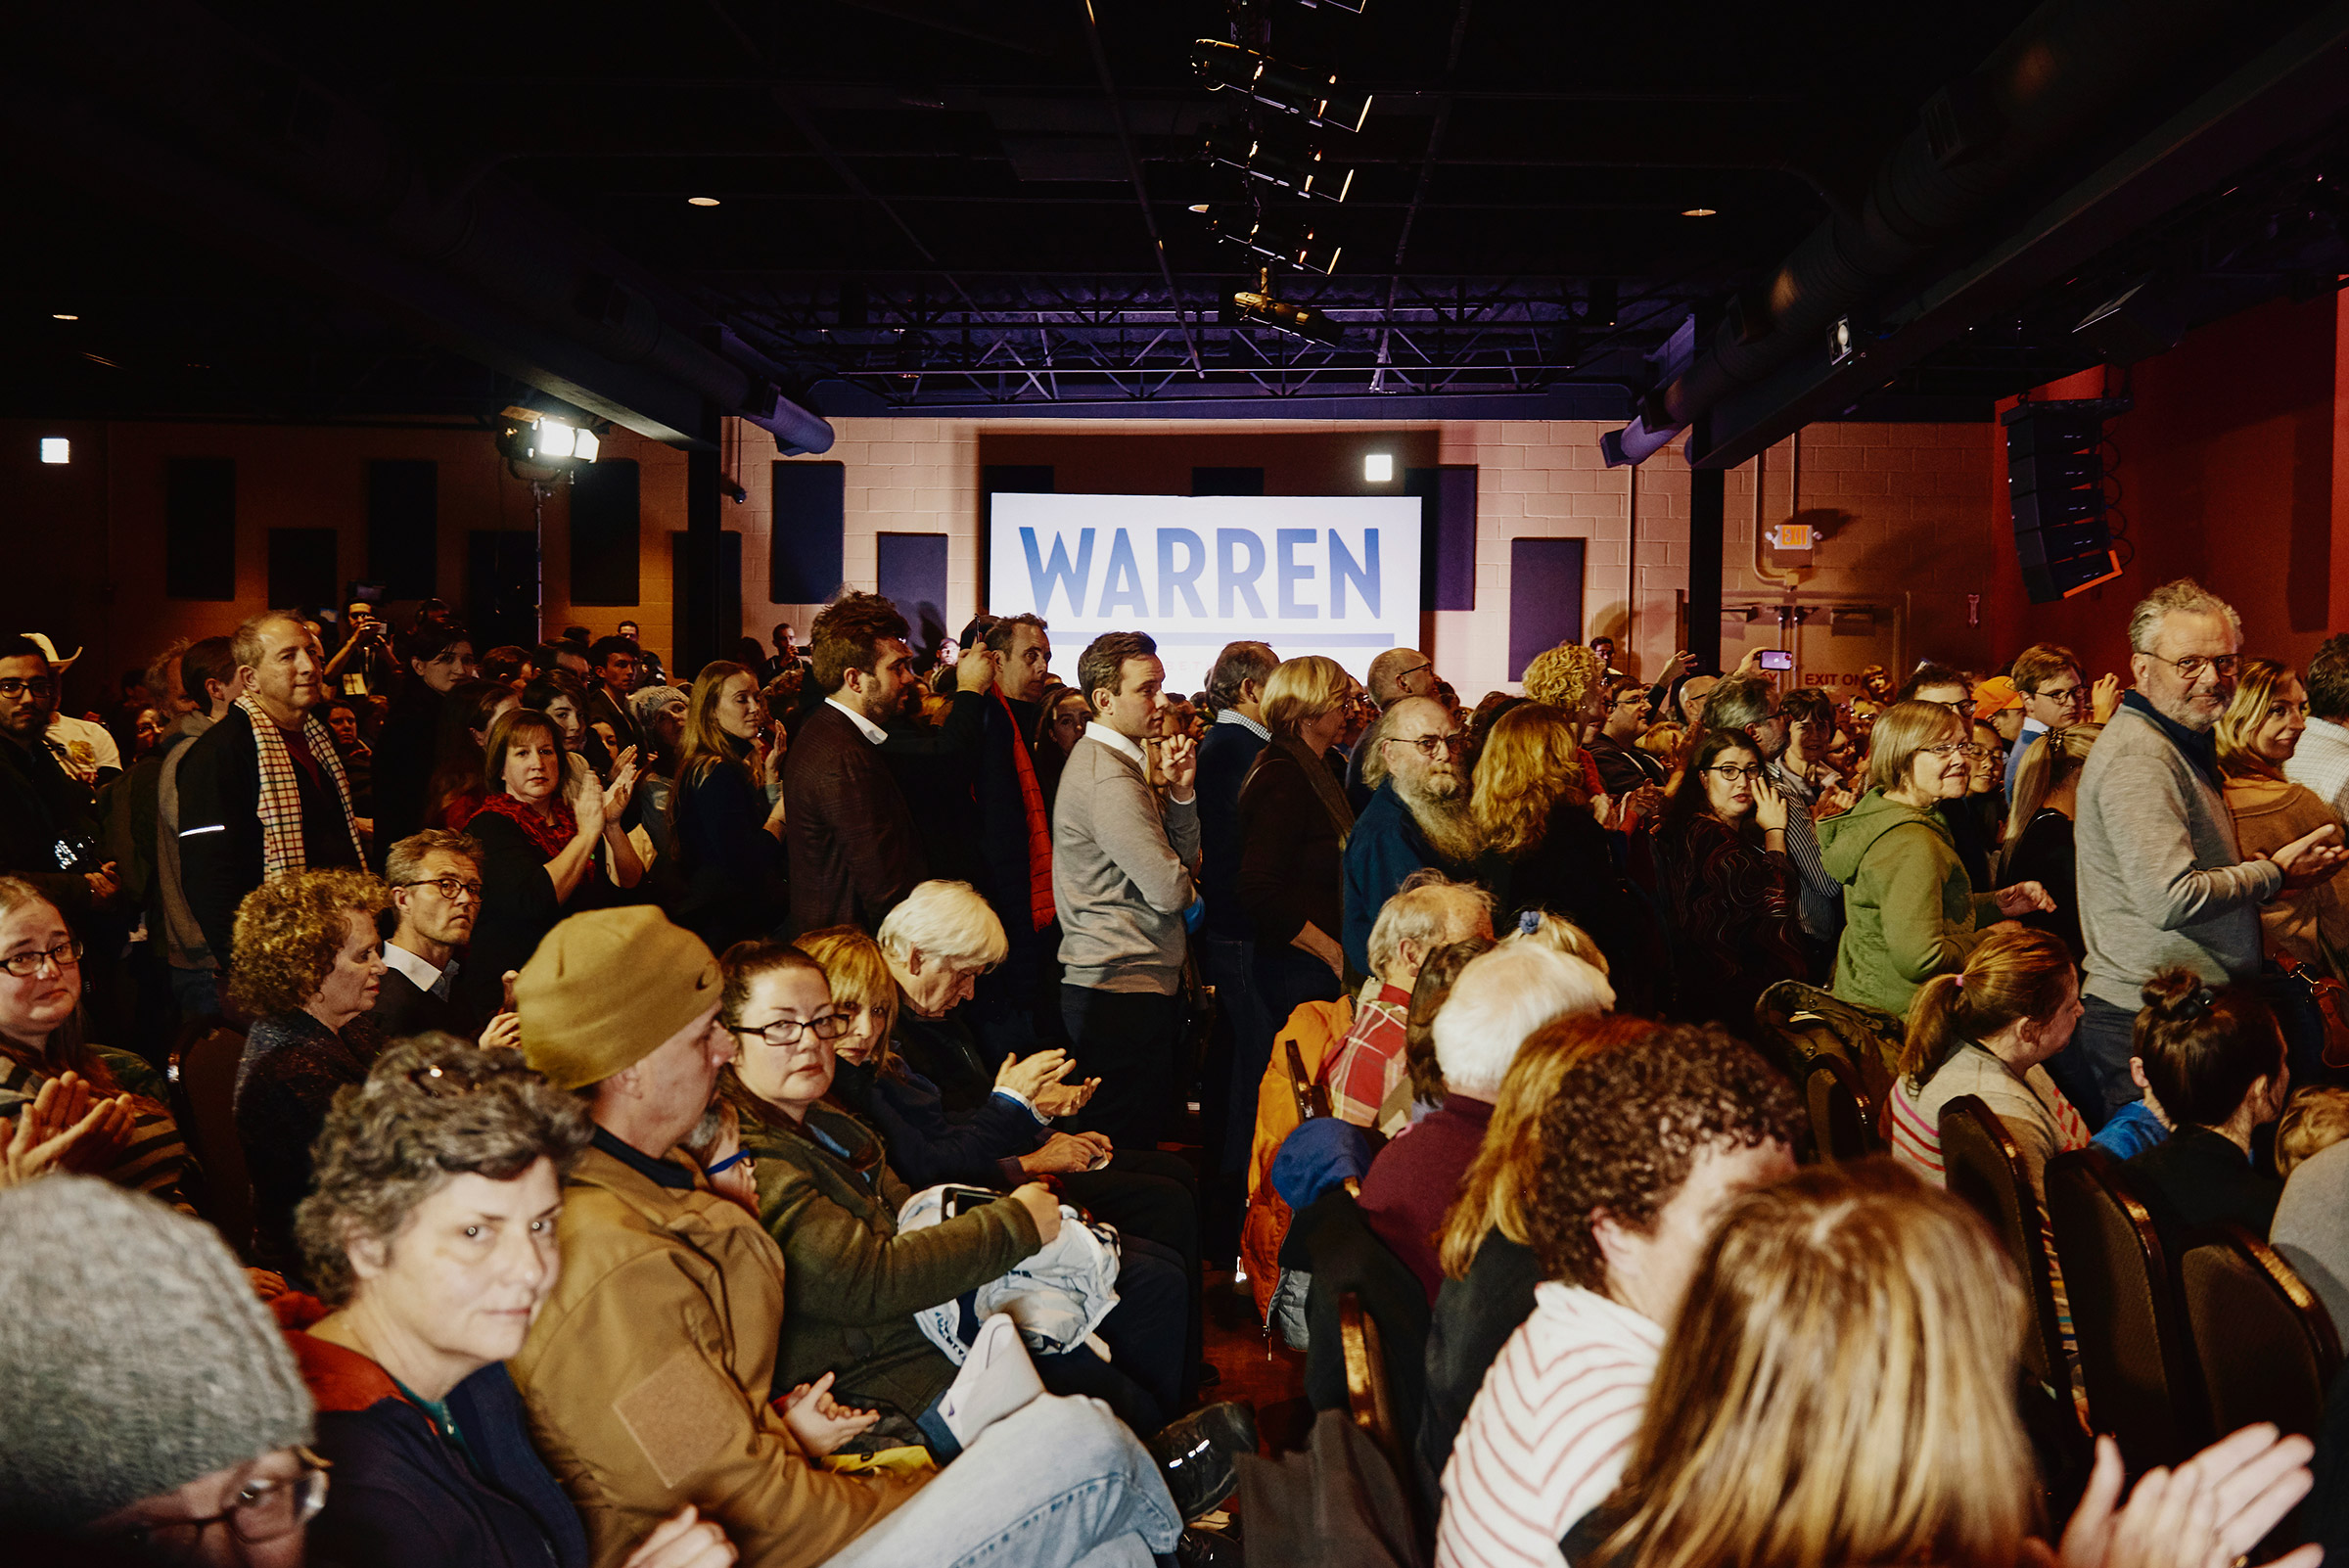 Guests at Elizabeth Warren's Derry GOTV Event at the Tupelo Music Hall in Derry, NH on Feb. 6, 2020.